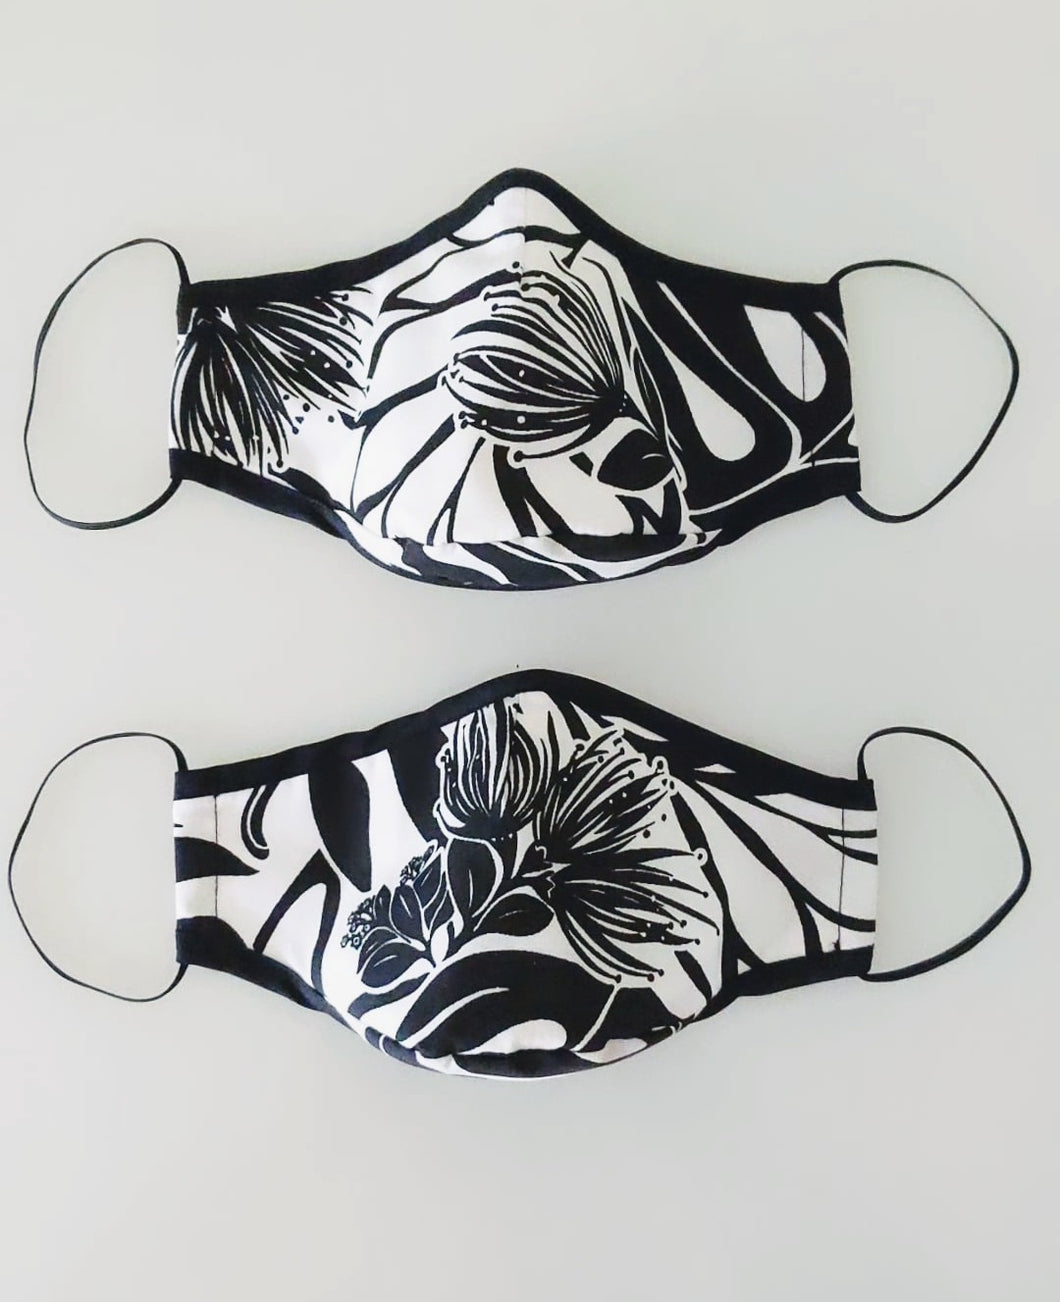 SELECTIVE HA Ohia Resilience Breath Mask